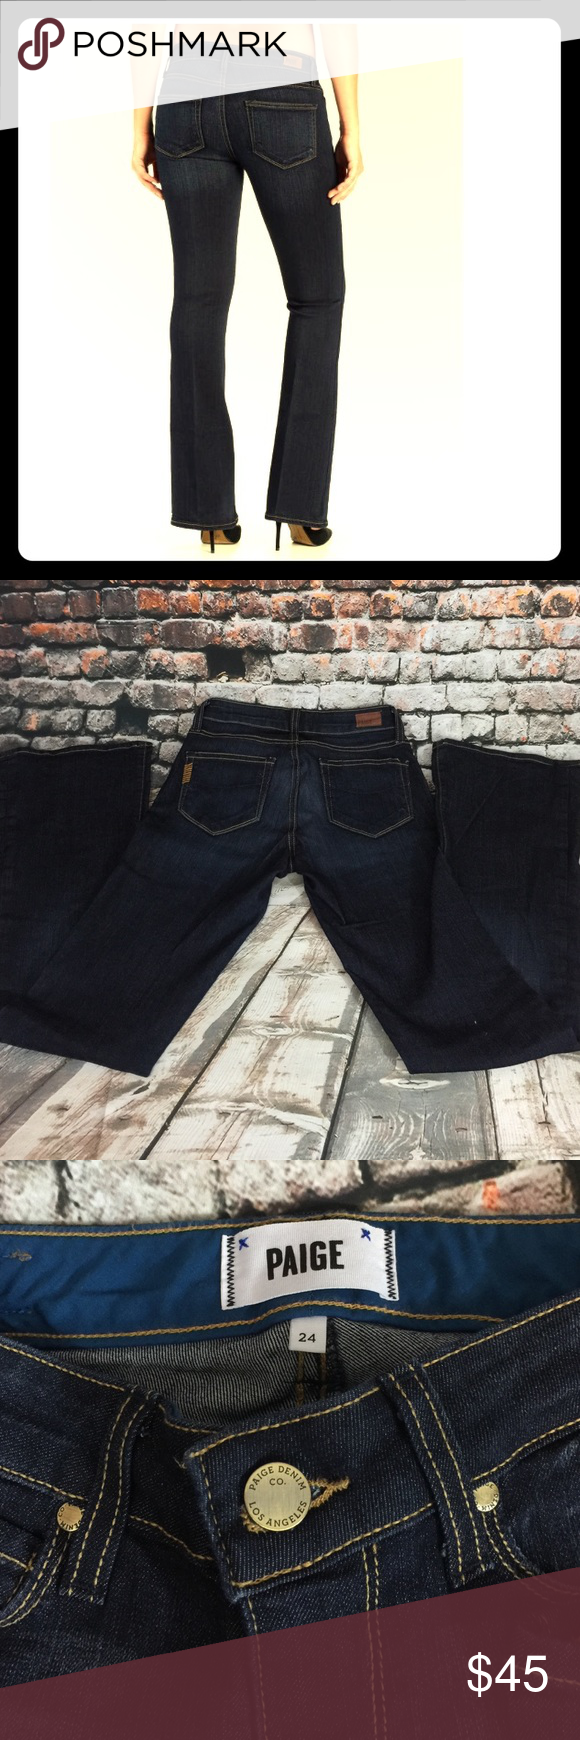 Paige jeans NWOT! Perfect for! Skyline boot petite! Size 24. Paige Jeans Jeans